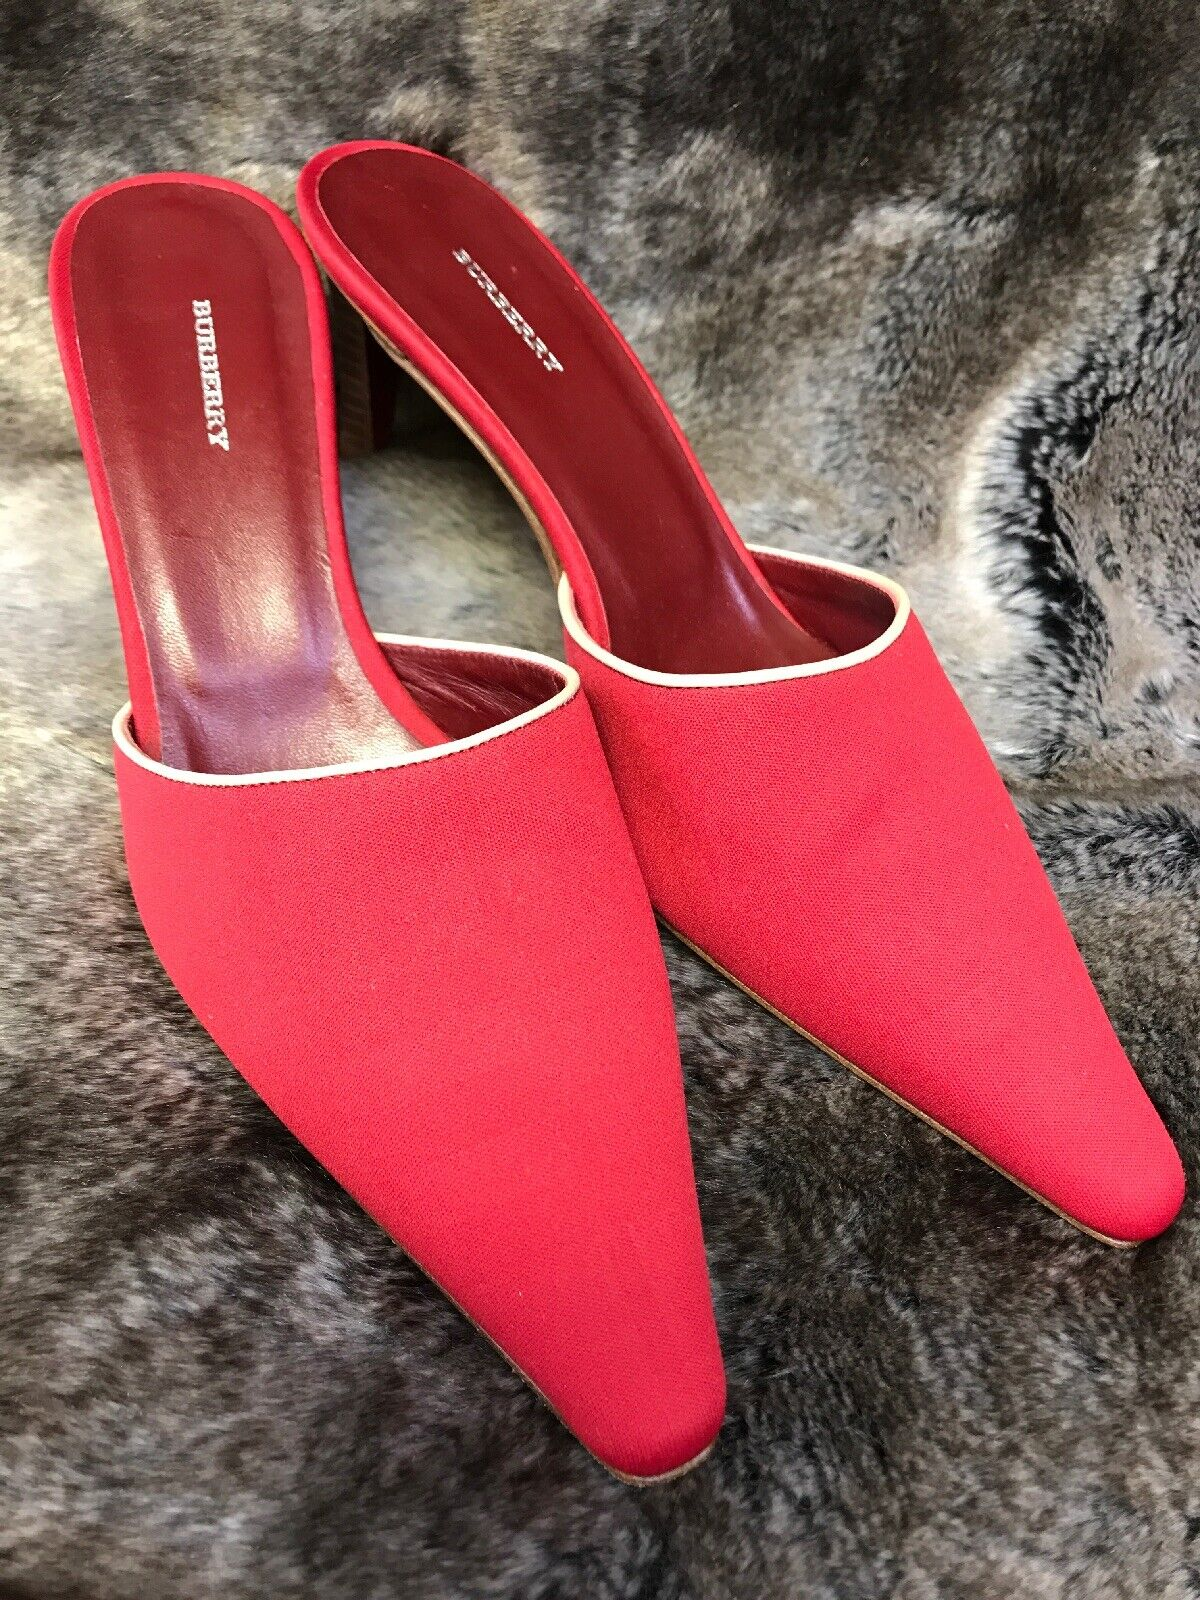 Burberry Heeled Heeled Heeled Slip ons Red Gently Pre owned